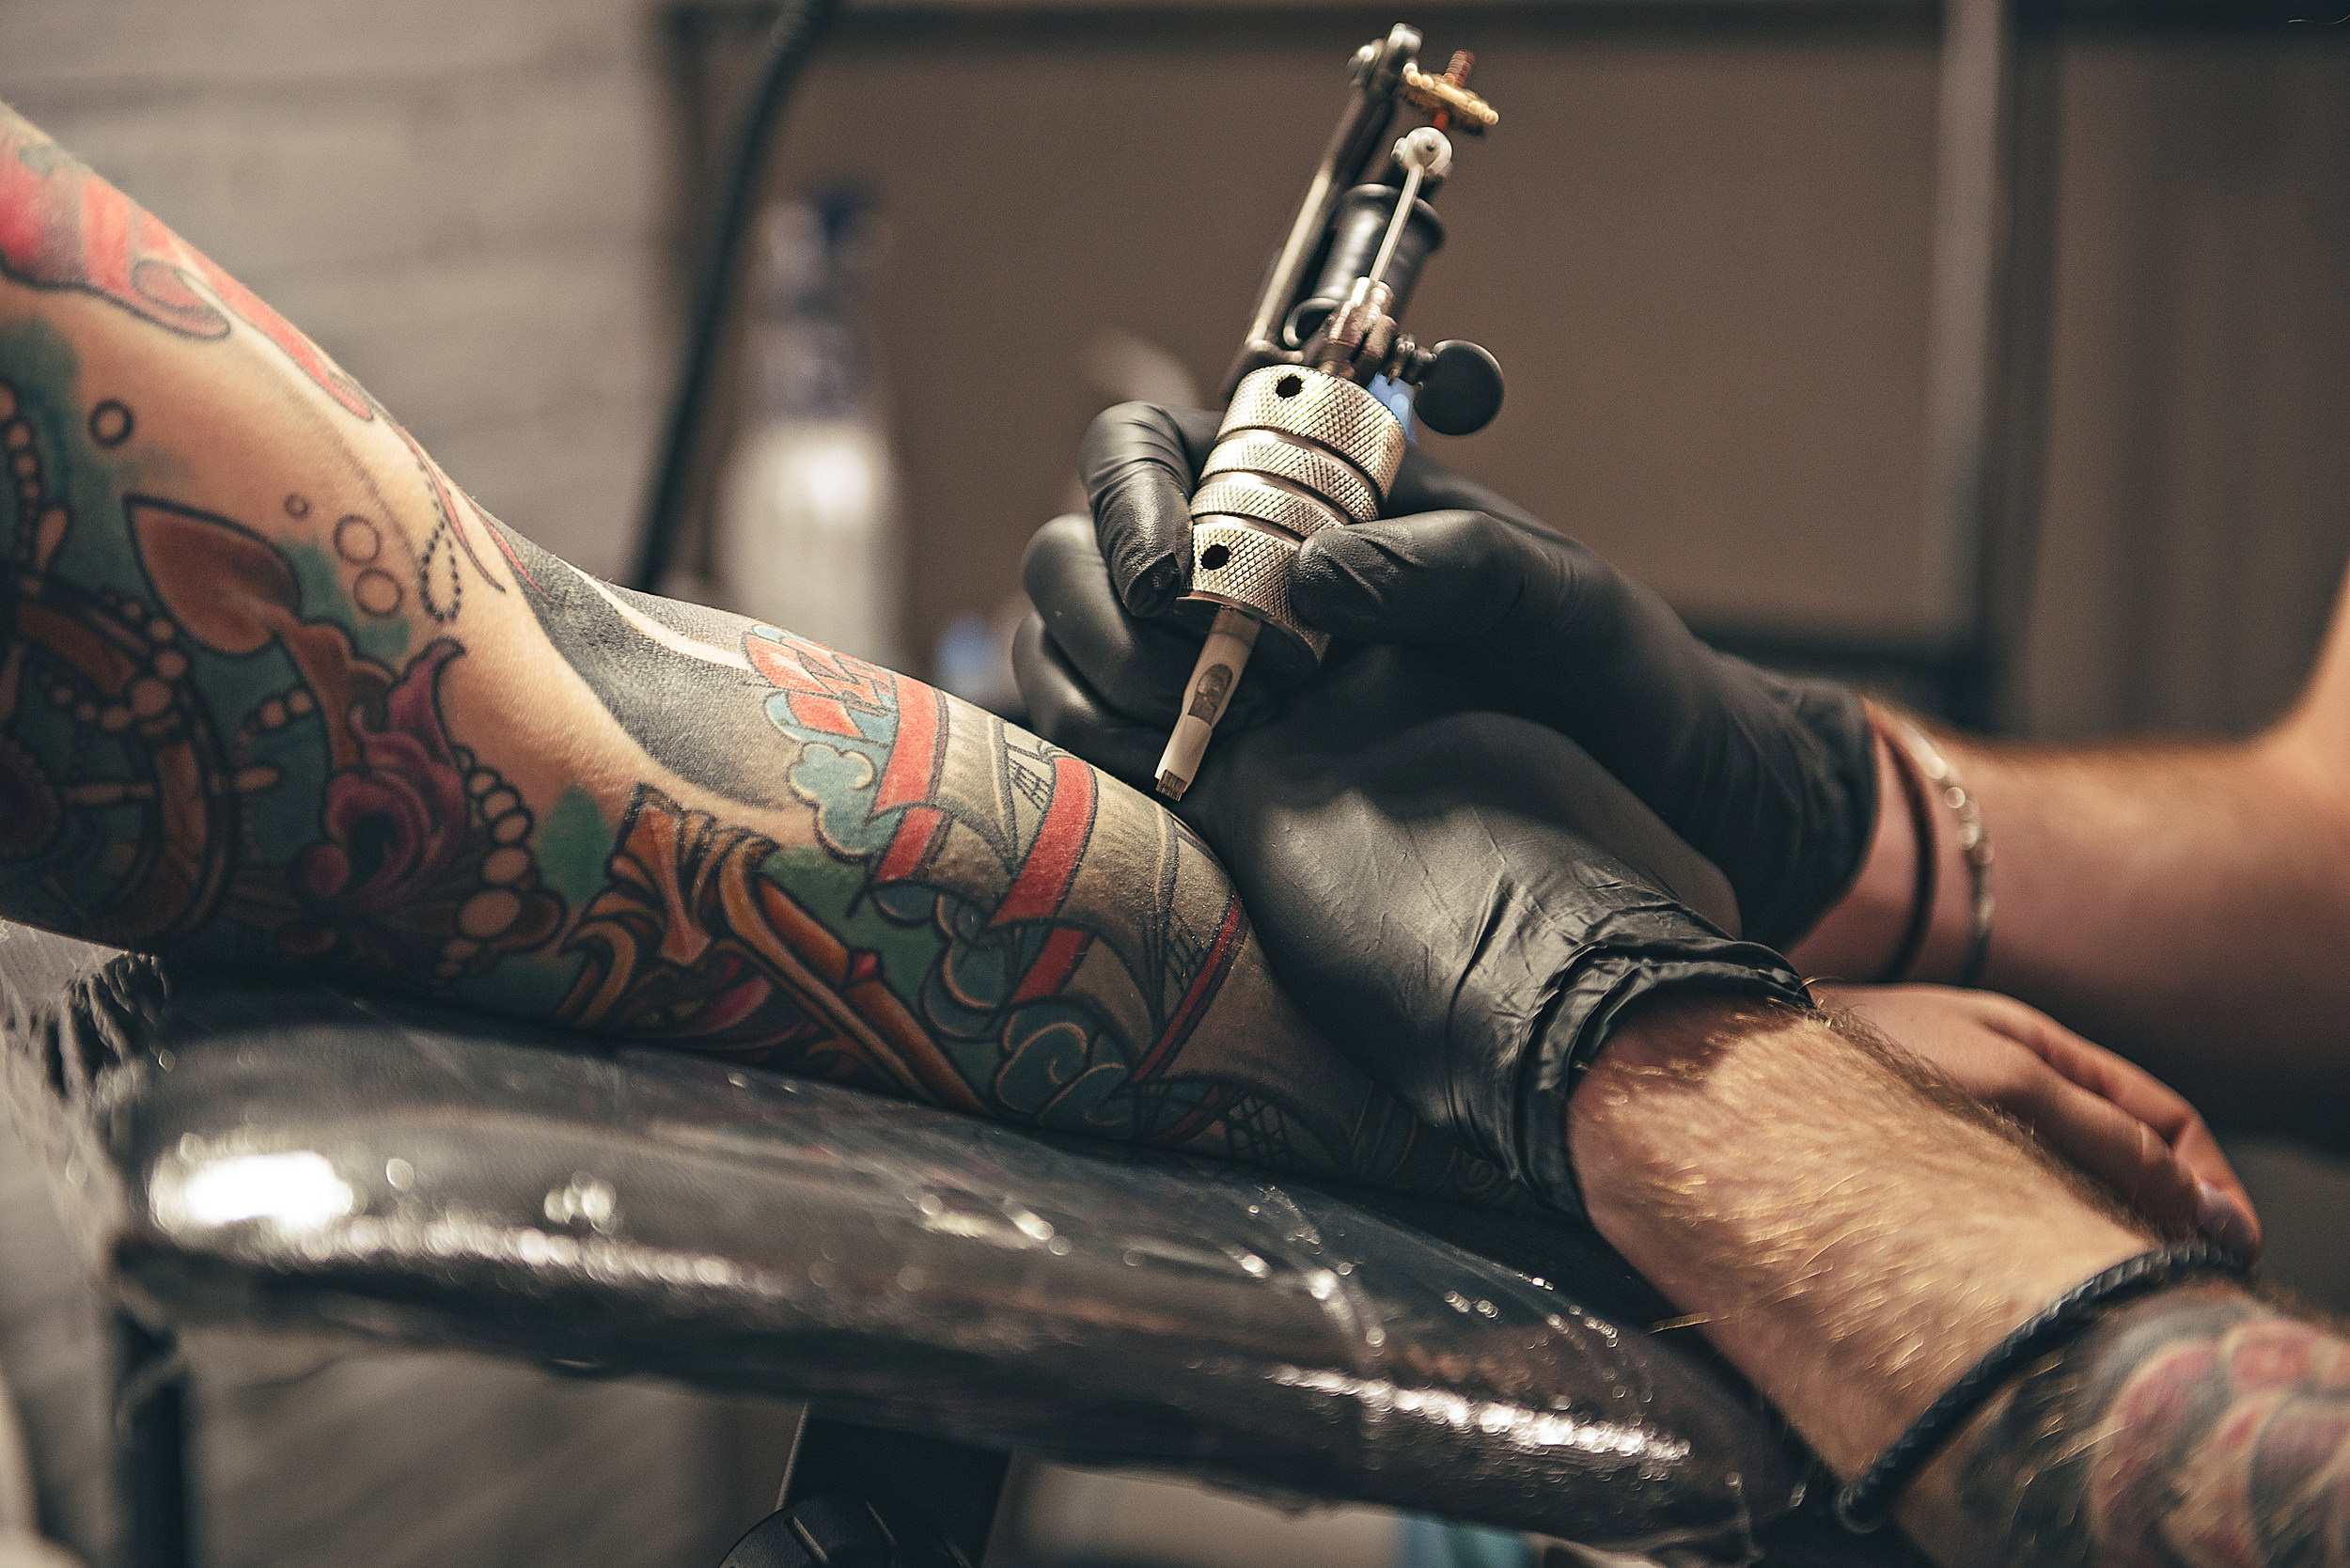 West Michigan\'s Favorite Tattoo Artist For 2018 Is...